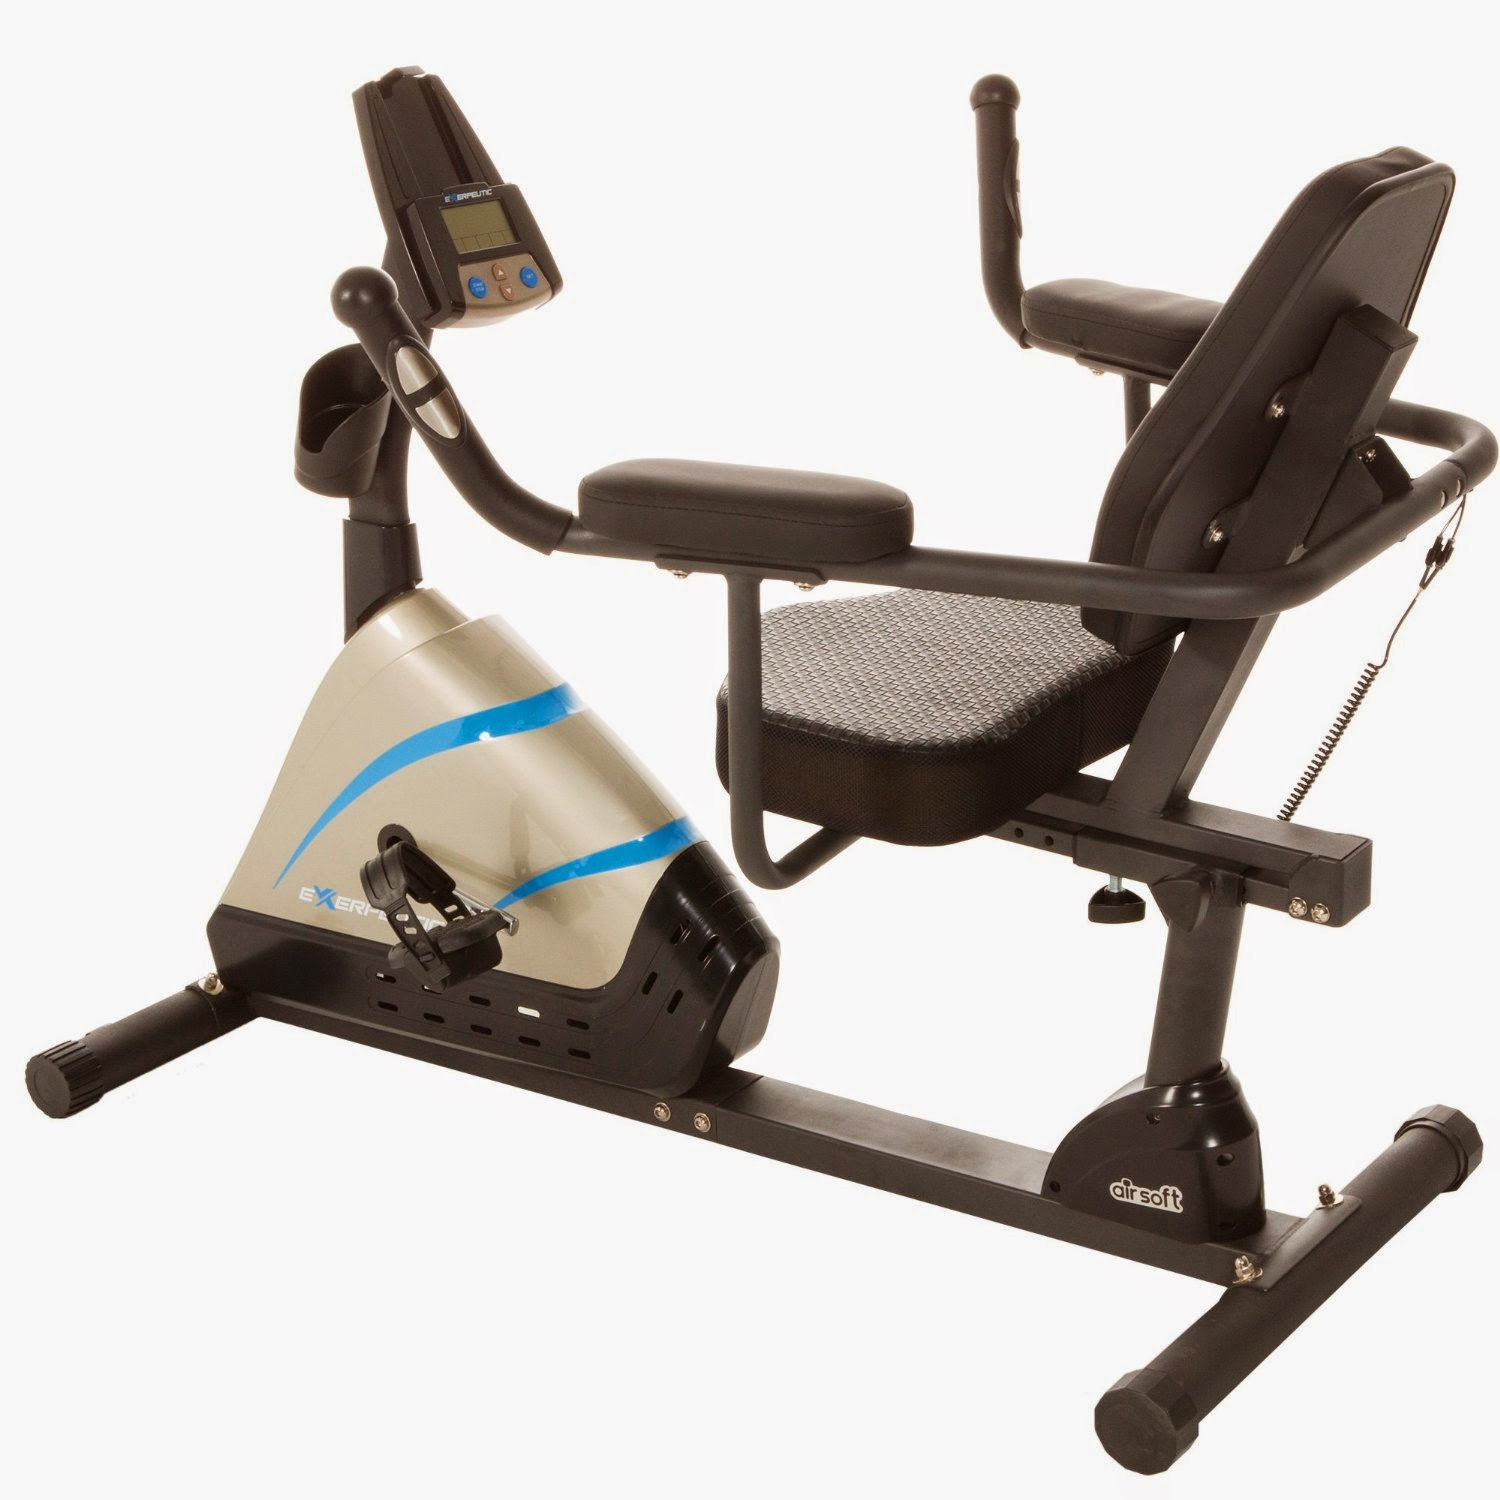 Exerpeutic 2000 High Capacity Programmable Magnetic Recumbent Bike with Air Soft Seat, picture, review features & specifications